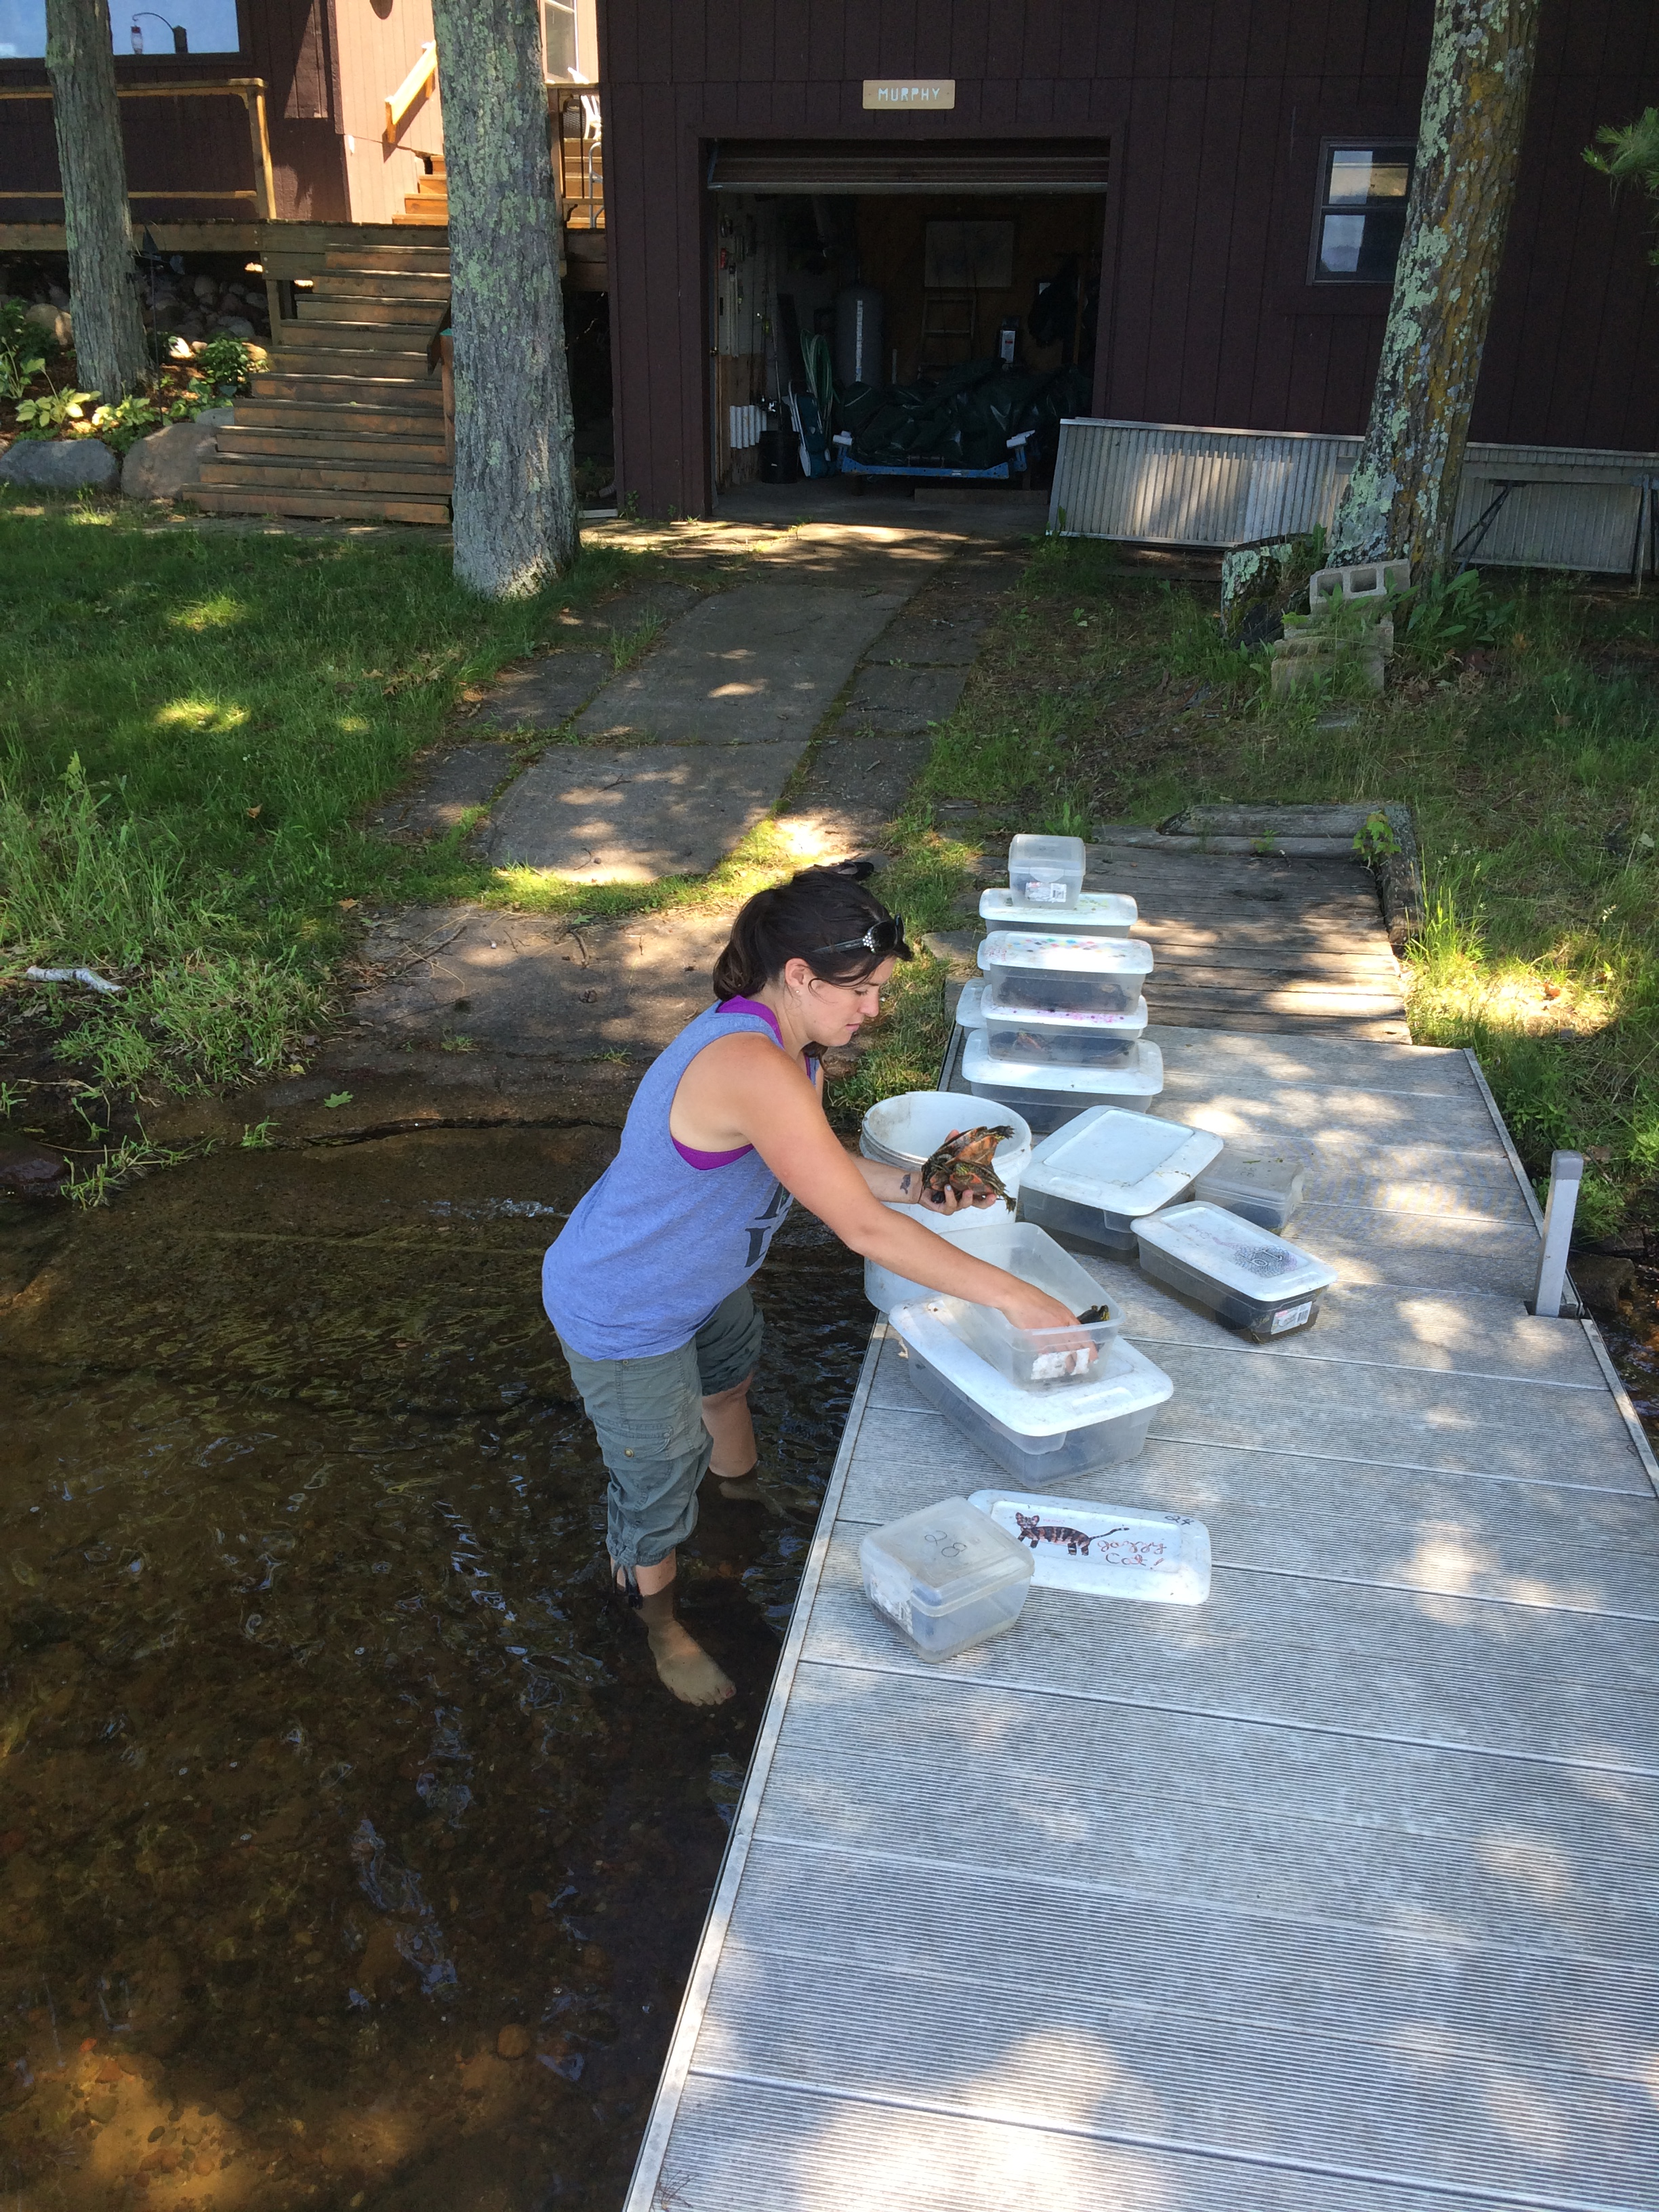 Researcher adding fresh water to bins of turtles at the field station